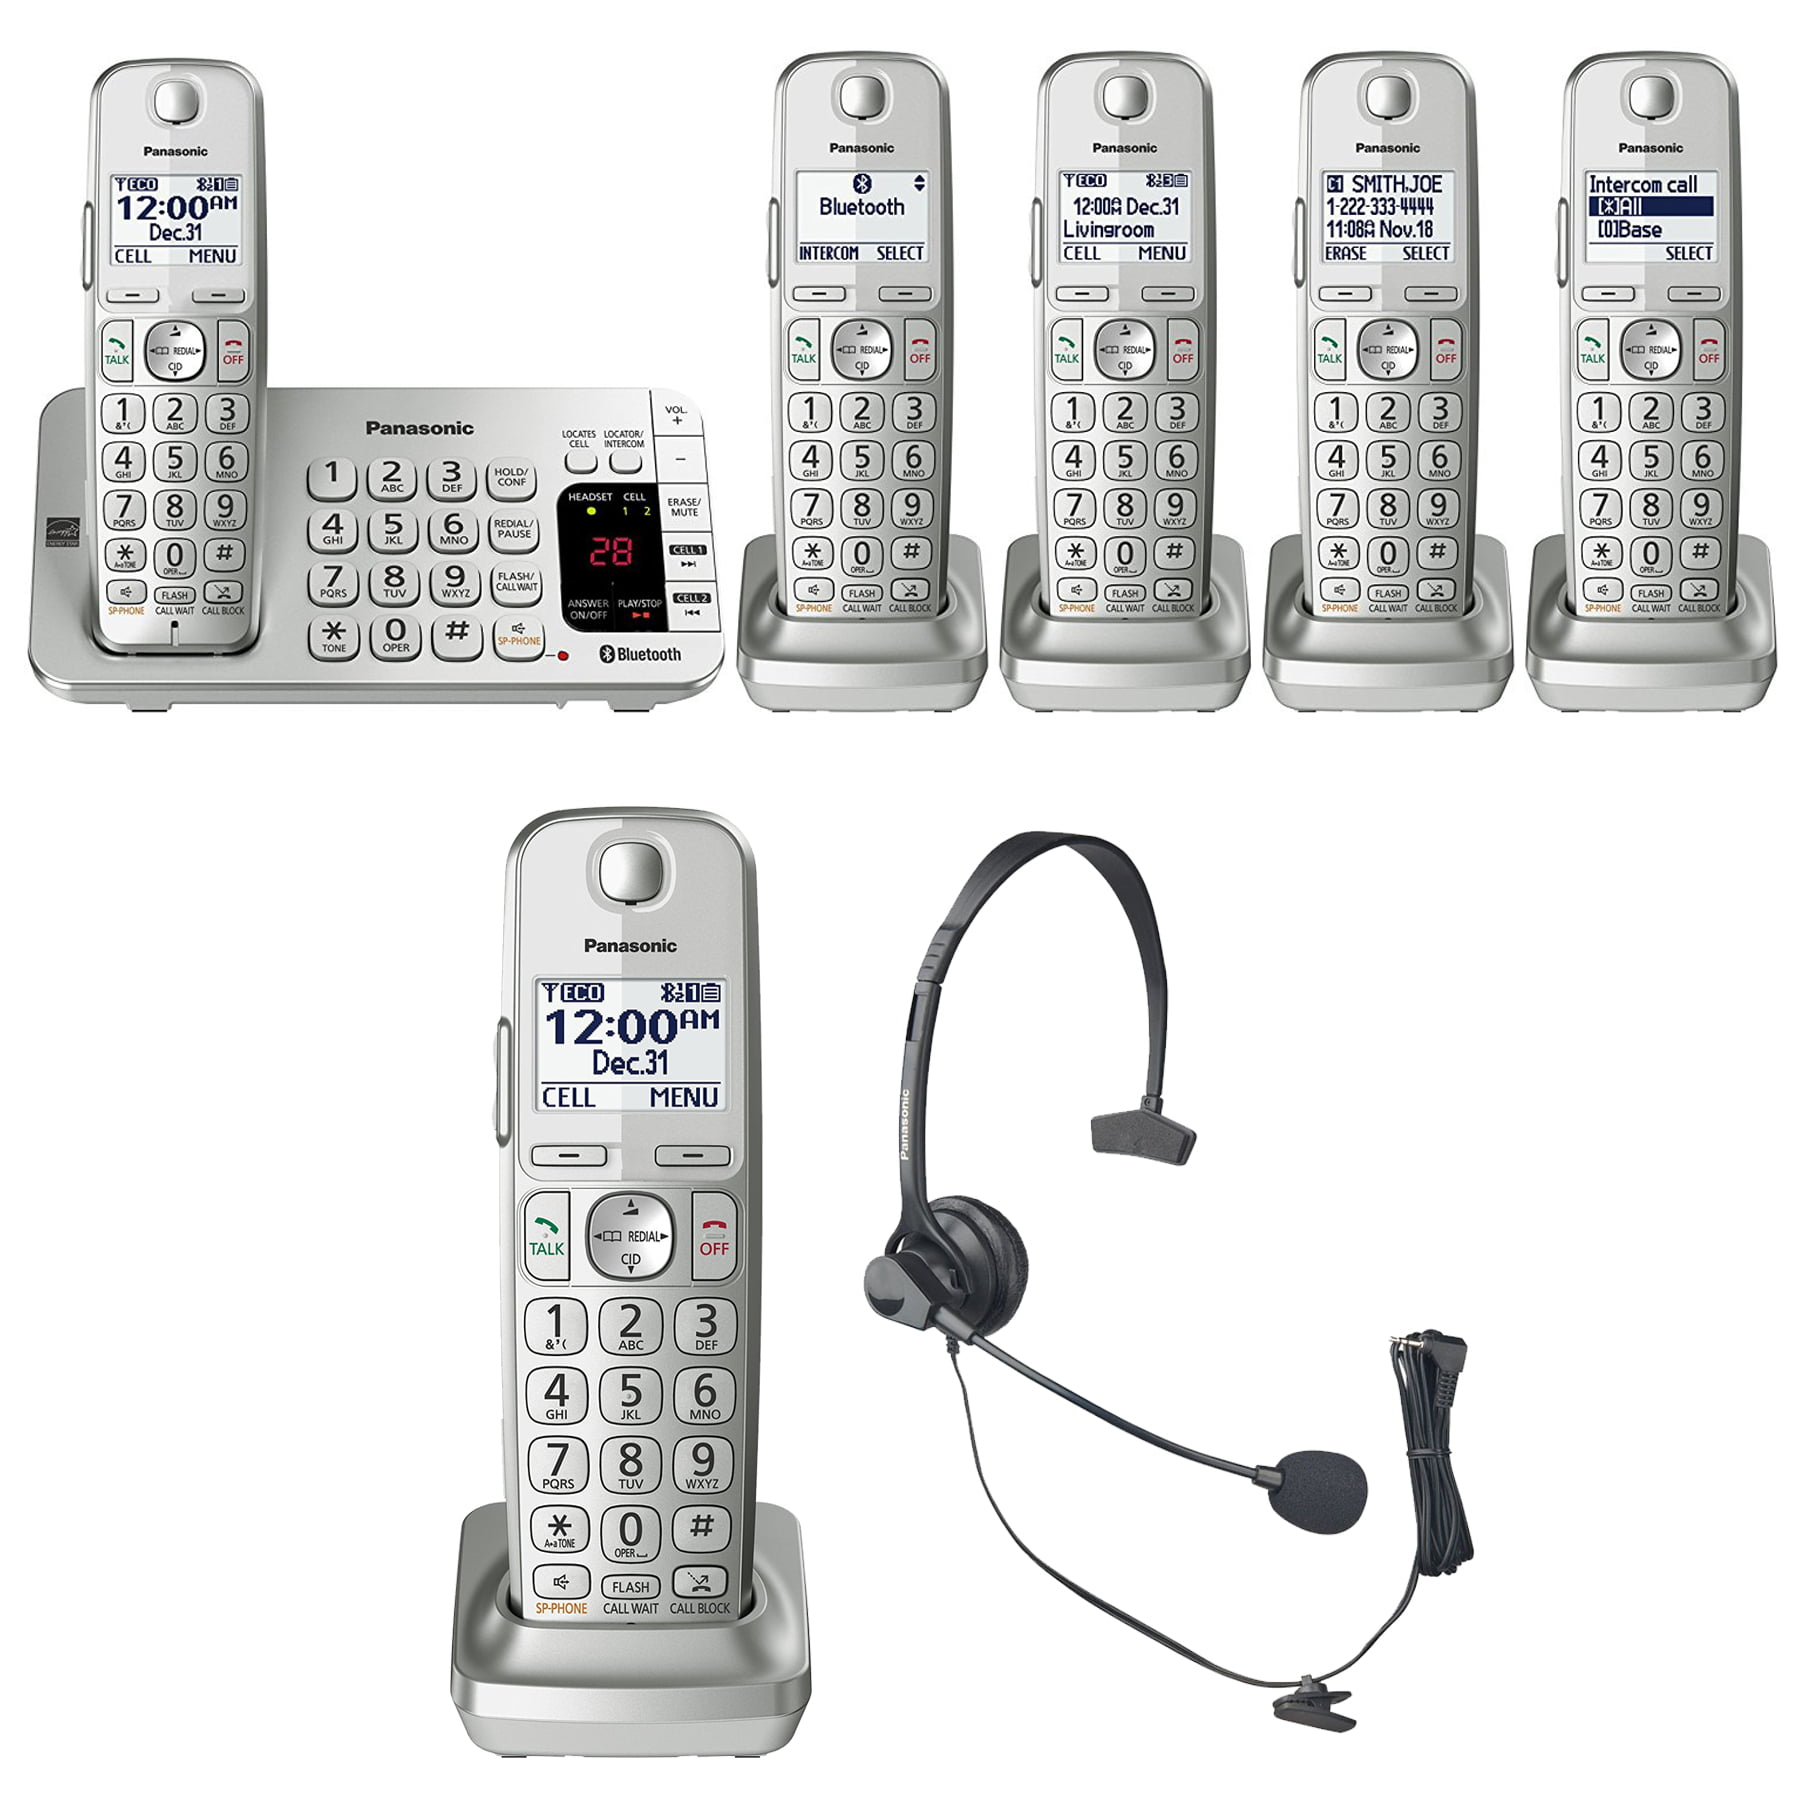 Panasonic KX-TGE475S Link2Cell Bluetooth Phone Answering Machine-5 Handsets by Overstock